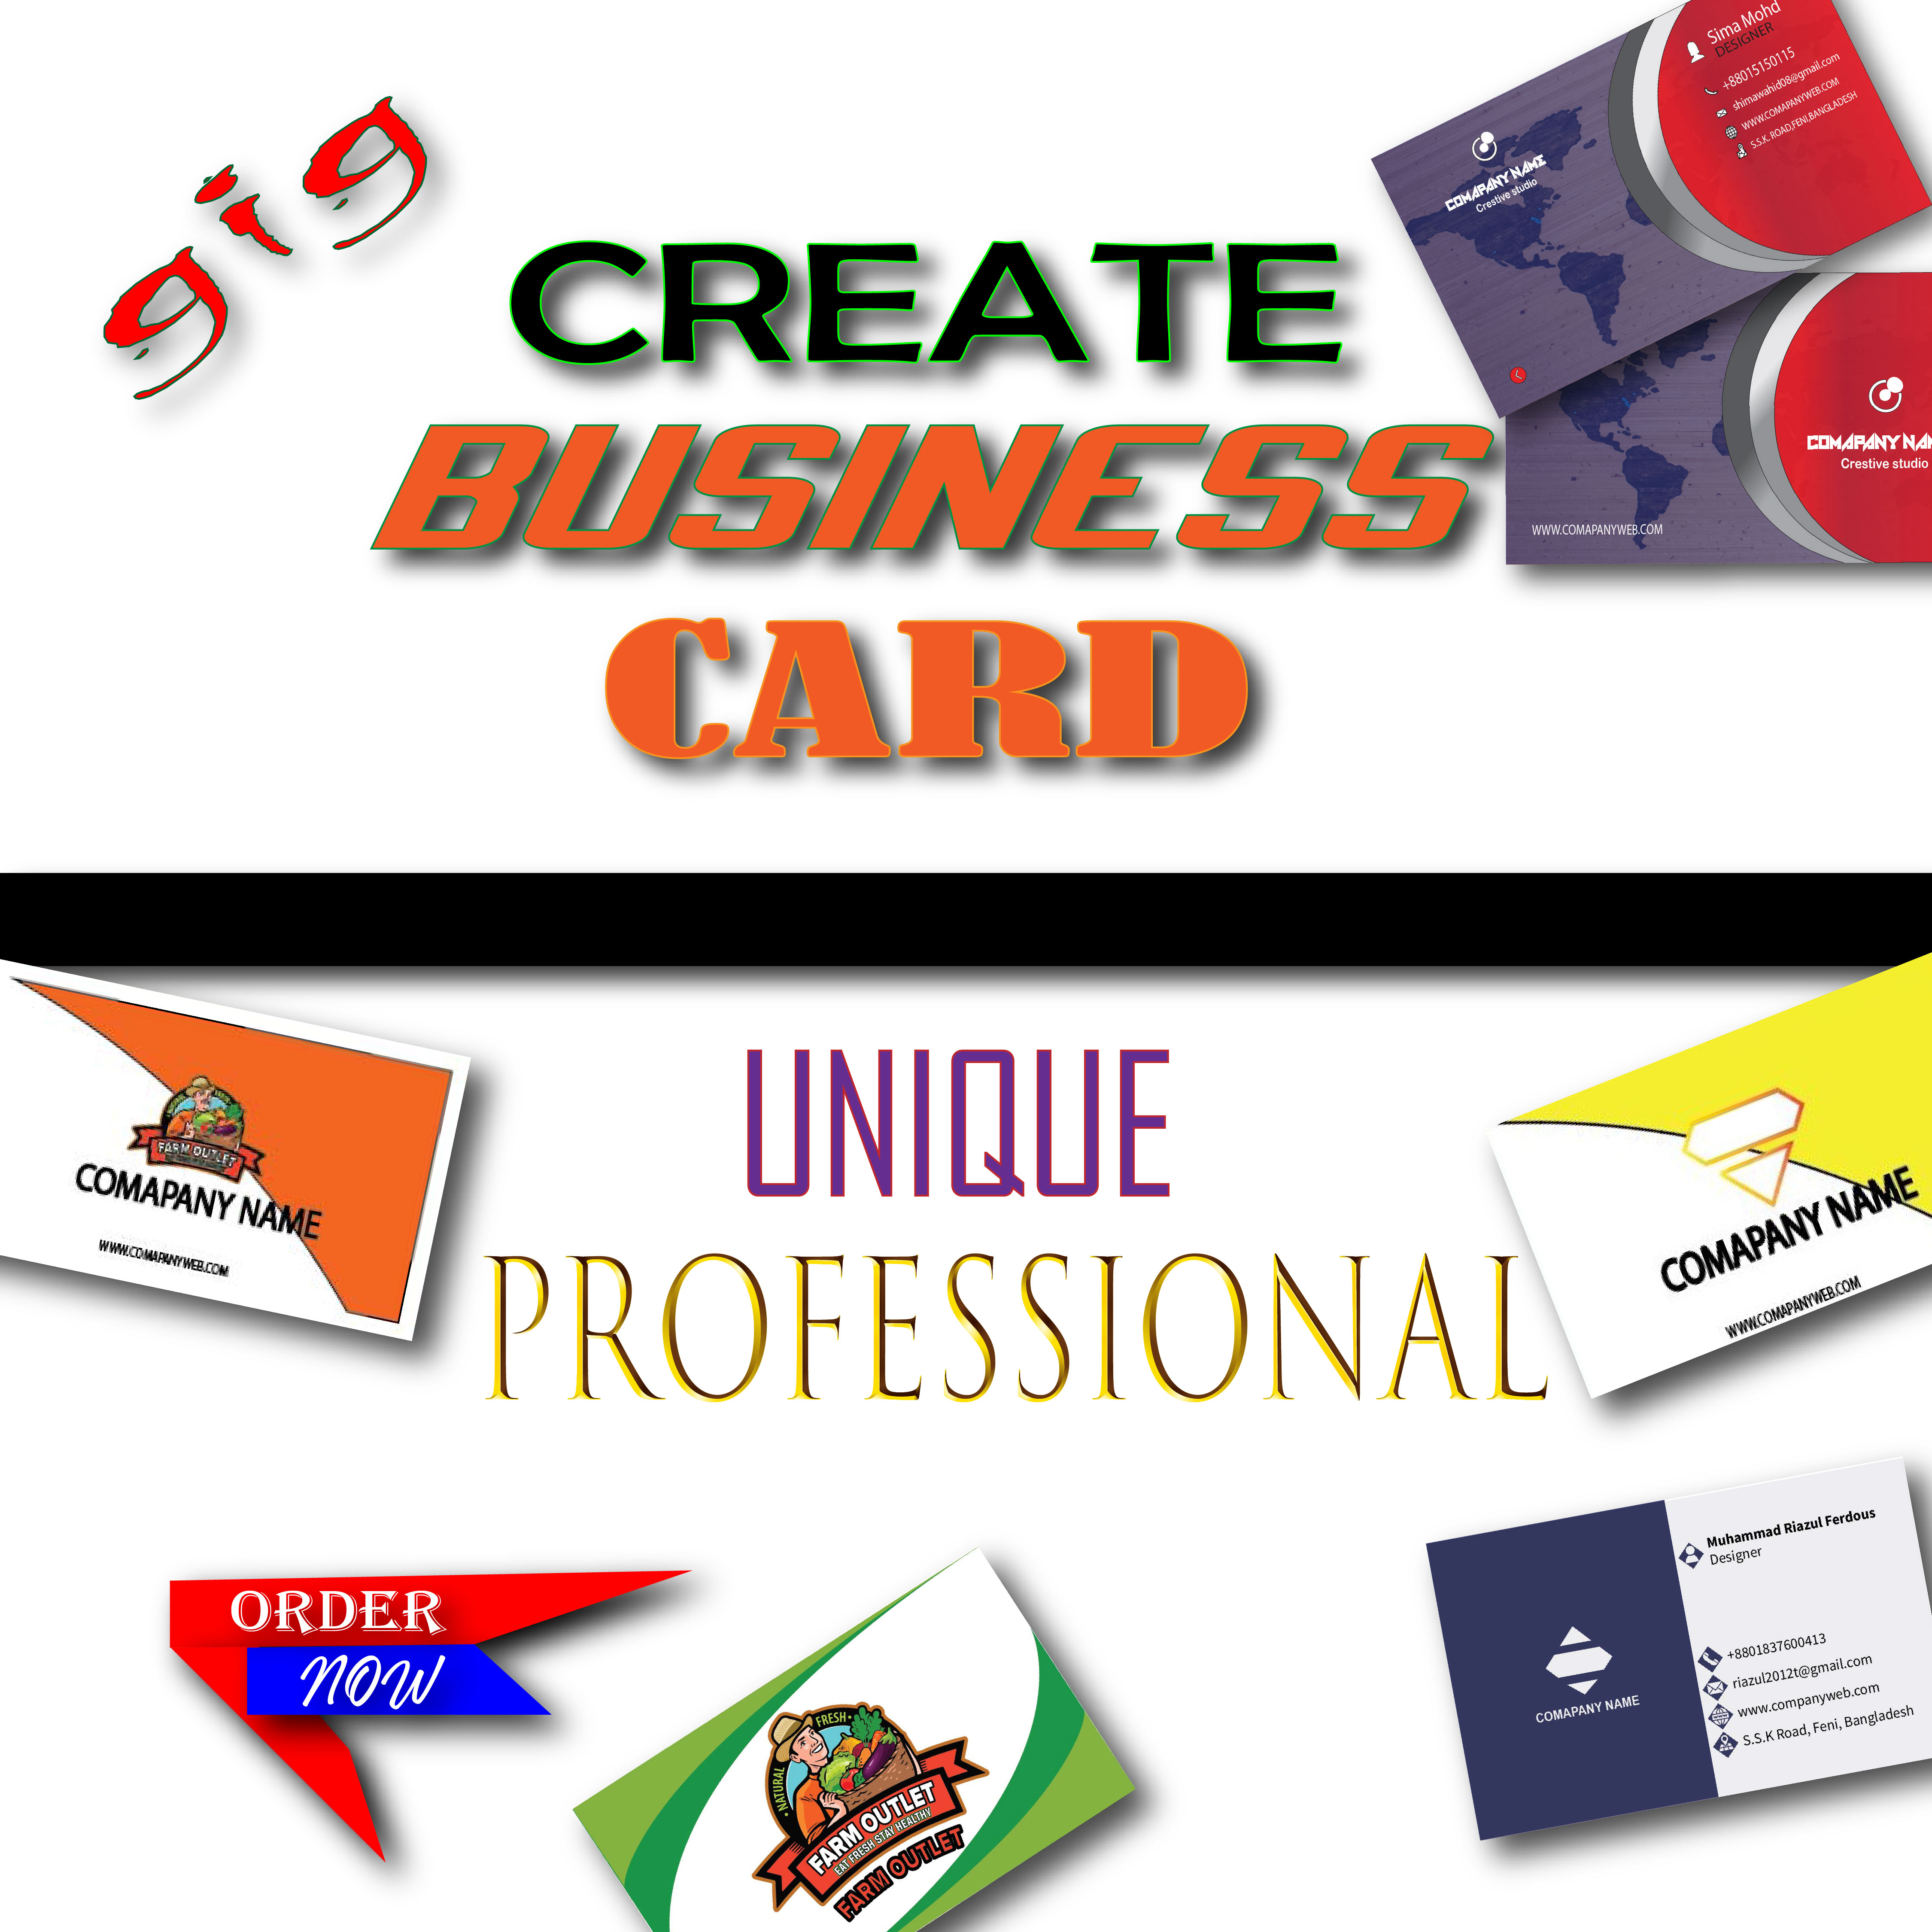 I will do business card design will be unique professional